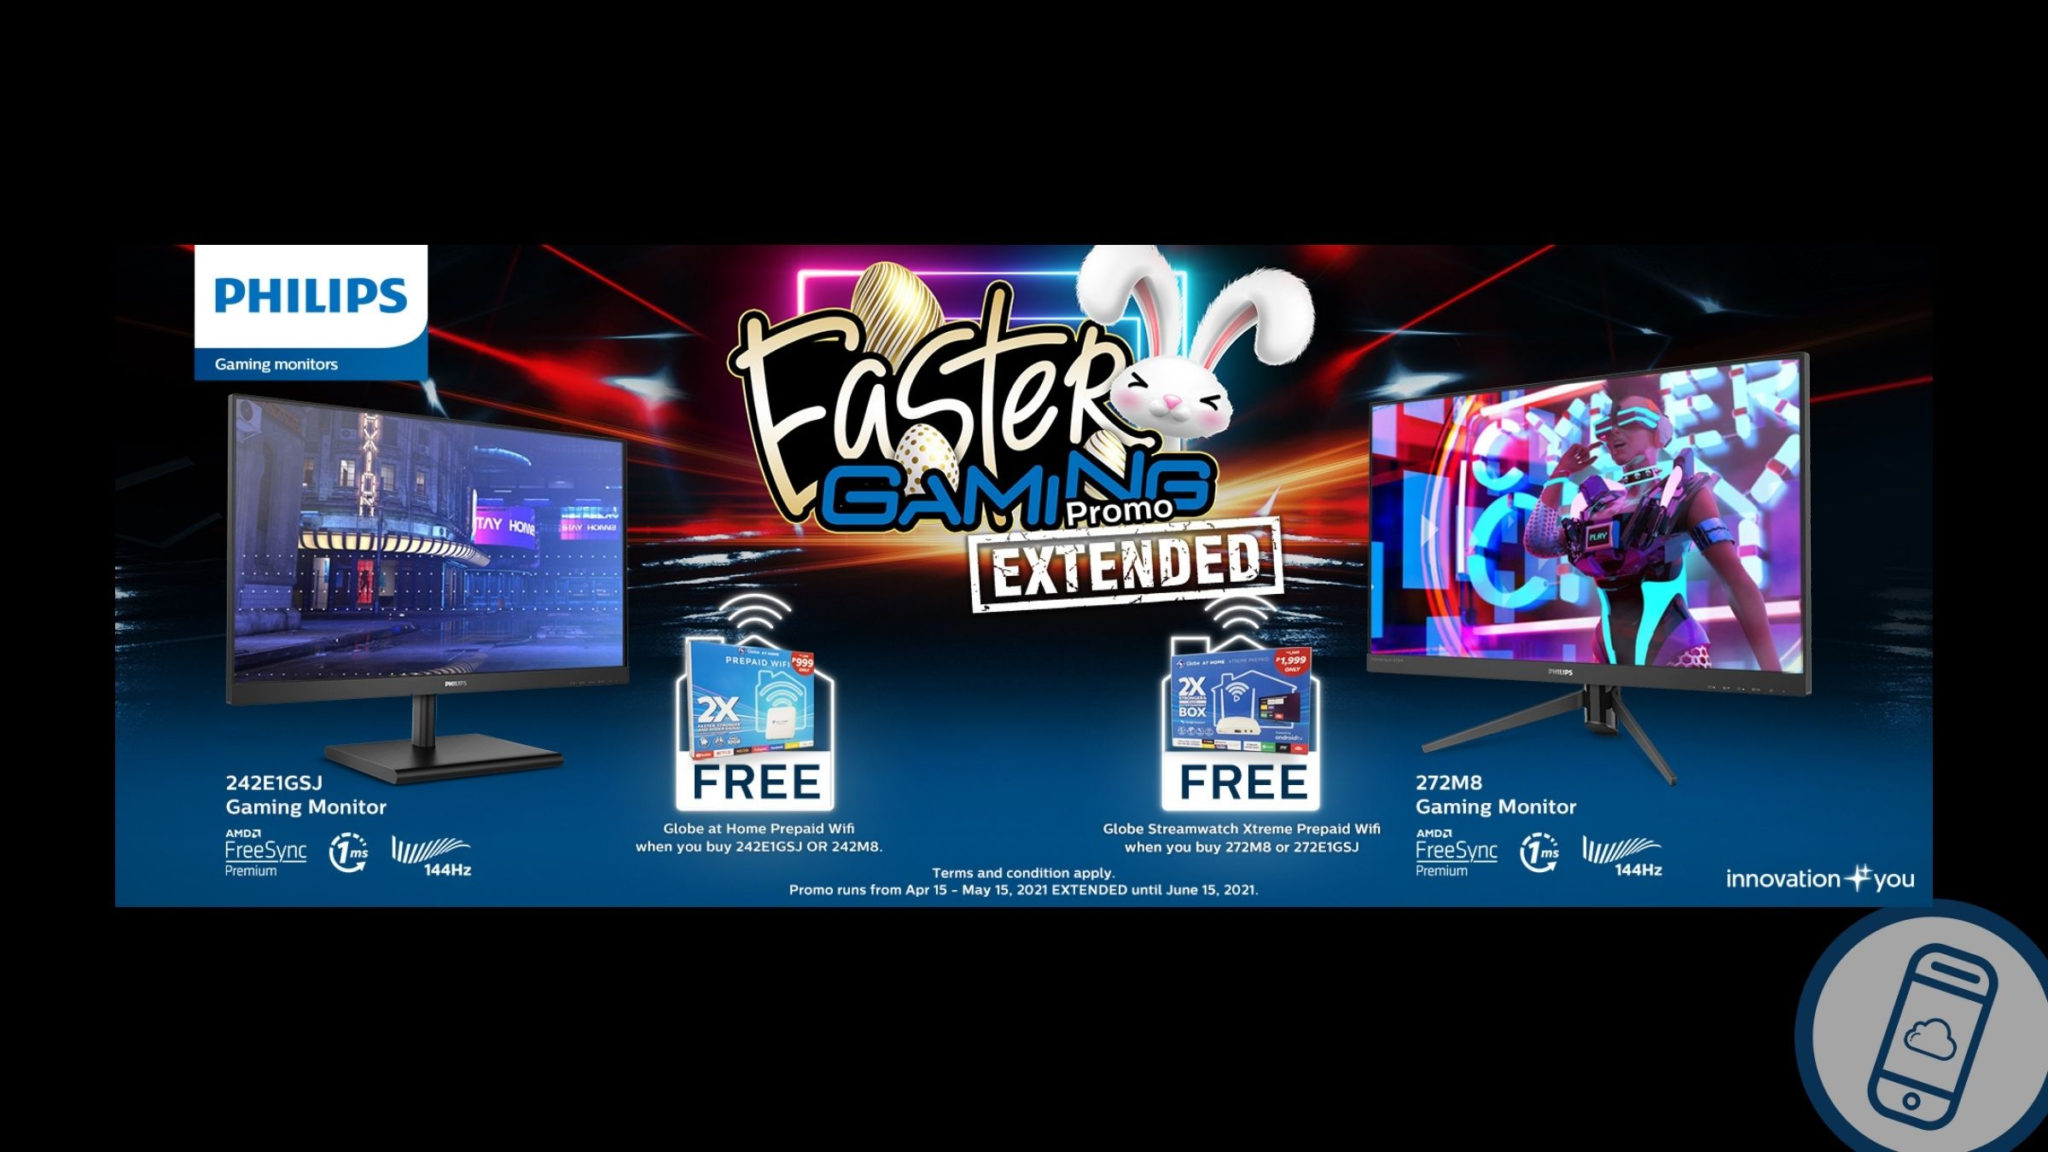 Philips Gaming Monitors Easter Promo Extended Header